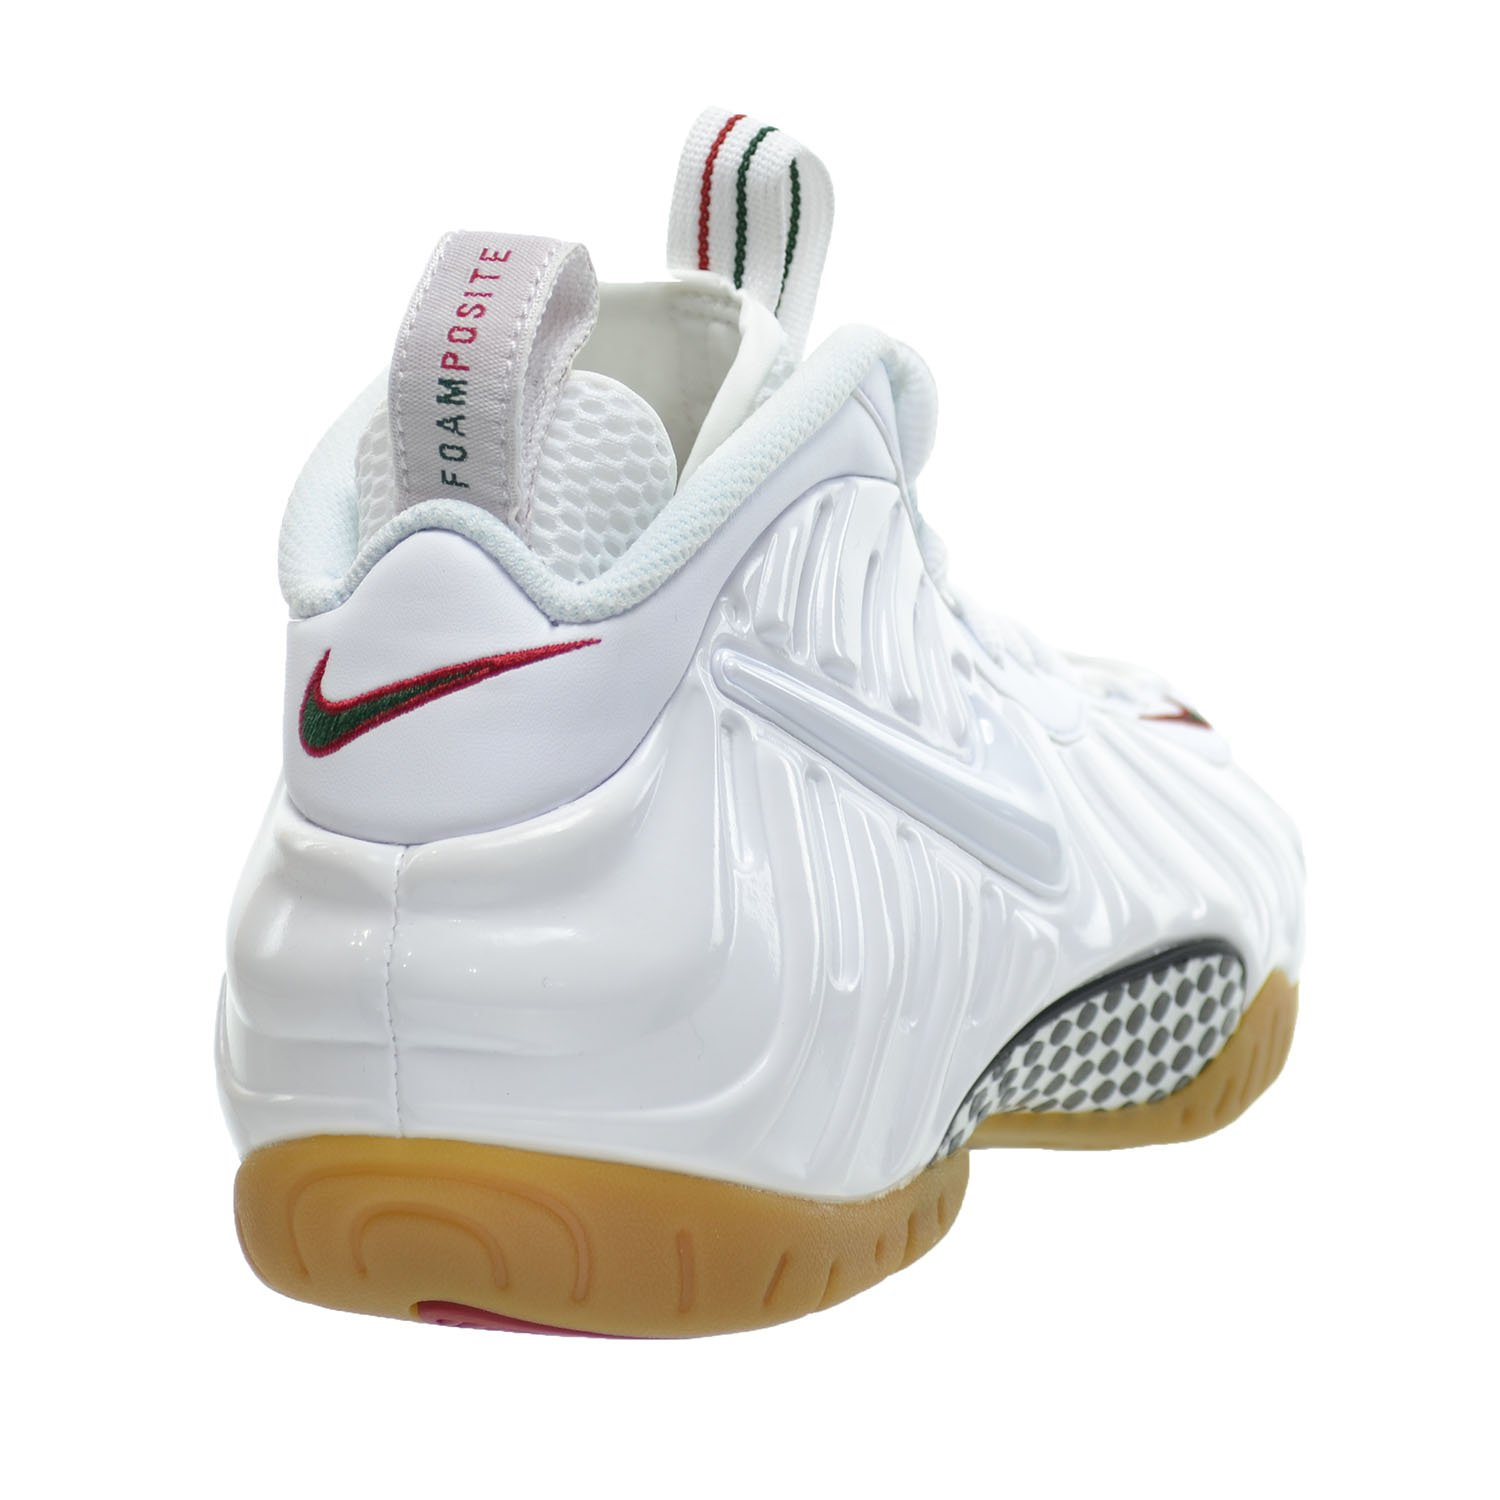 7038cfd25bcd6 Nike Air Foamposite Pro Men's Shoes White/White-Gym Red-Green 624041-102